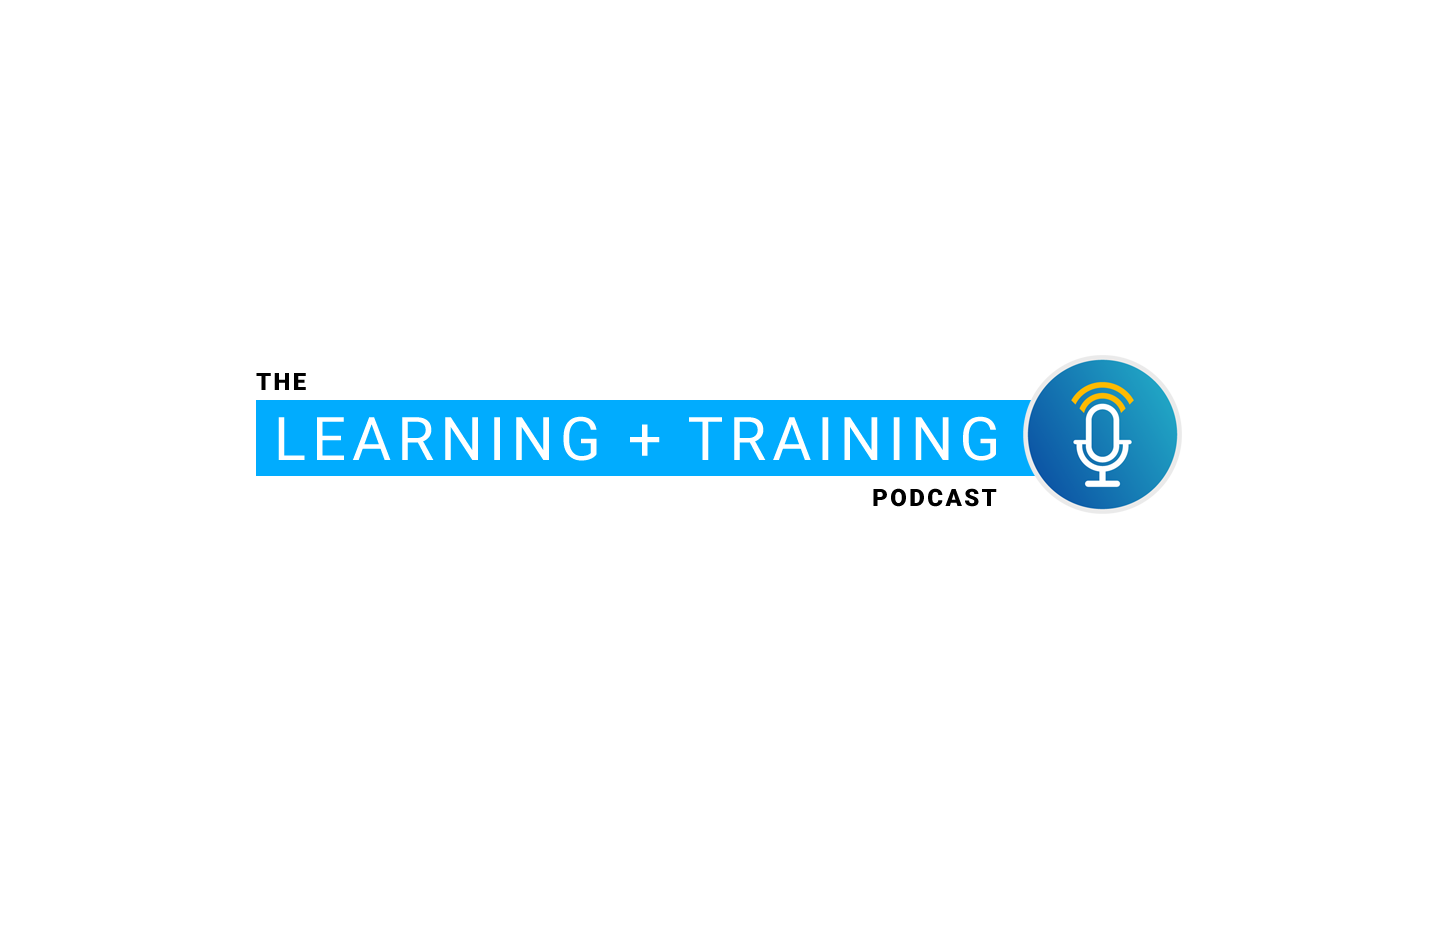 Learning-+-Training-masthead-podcast-logo